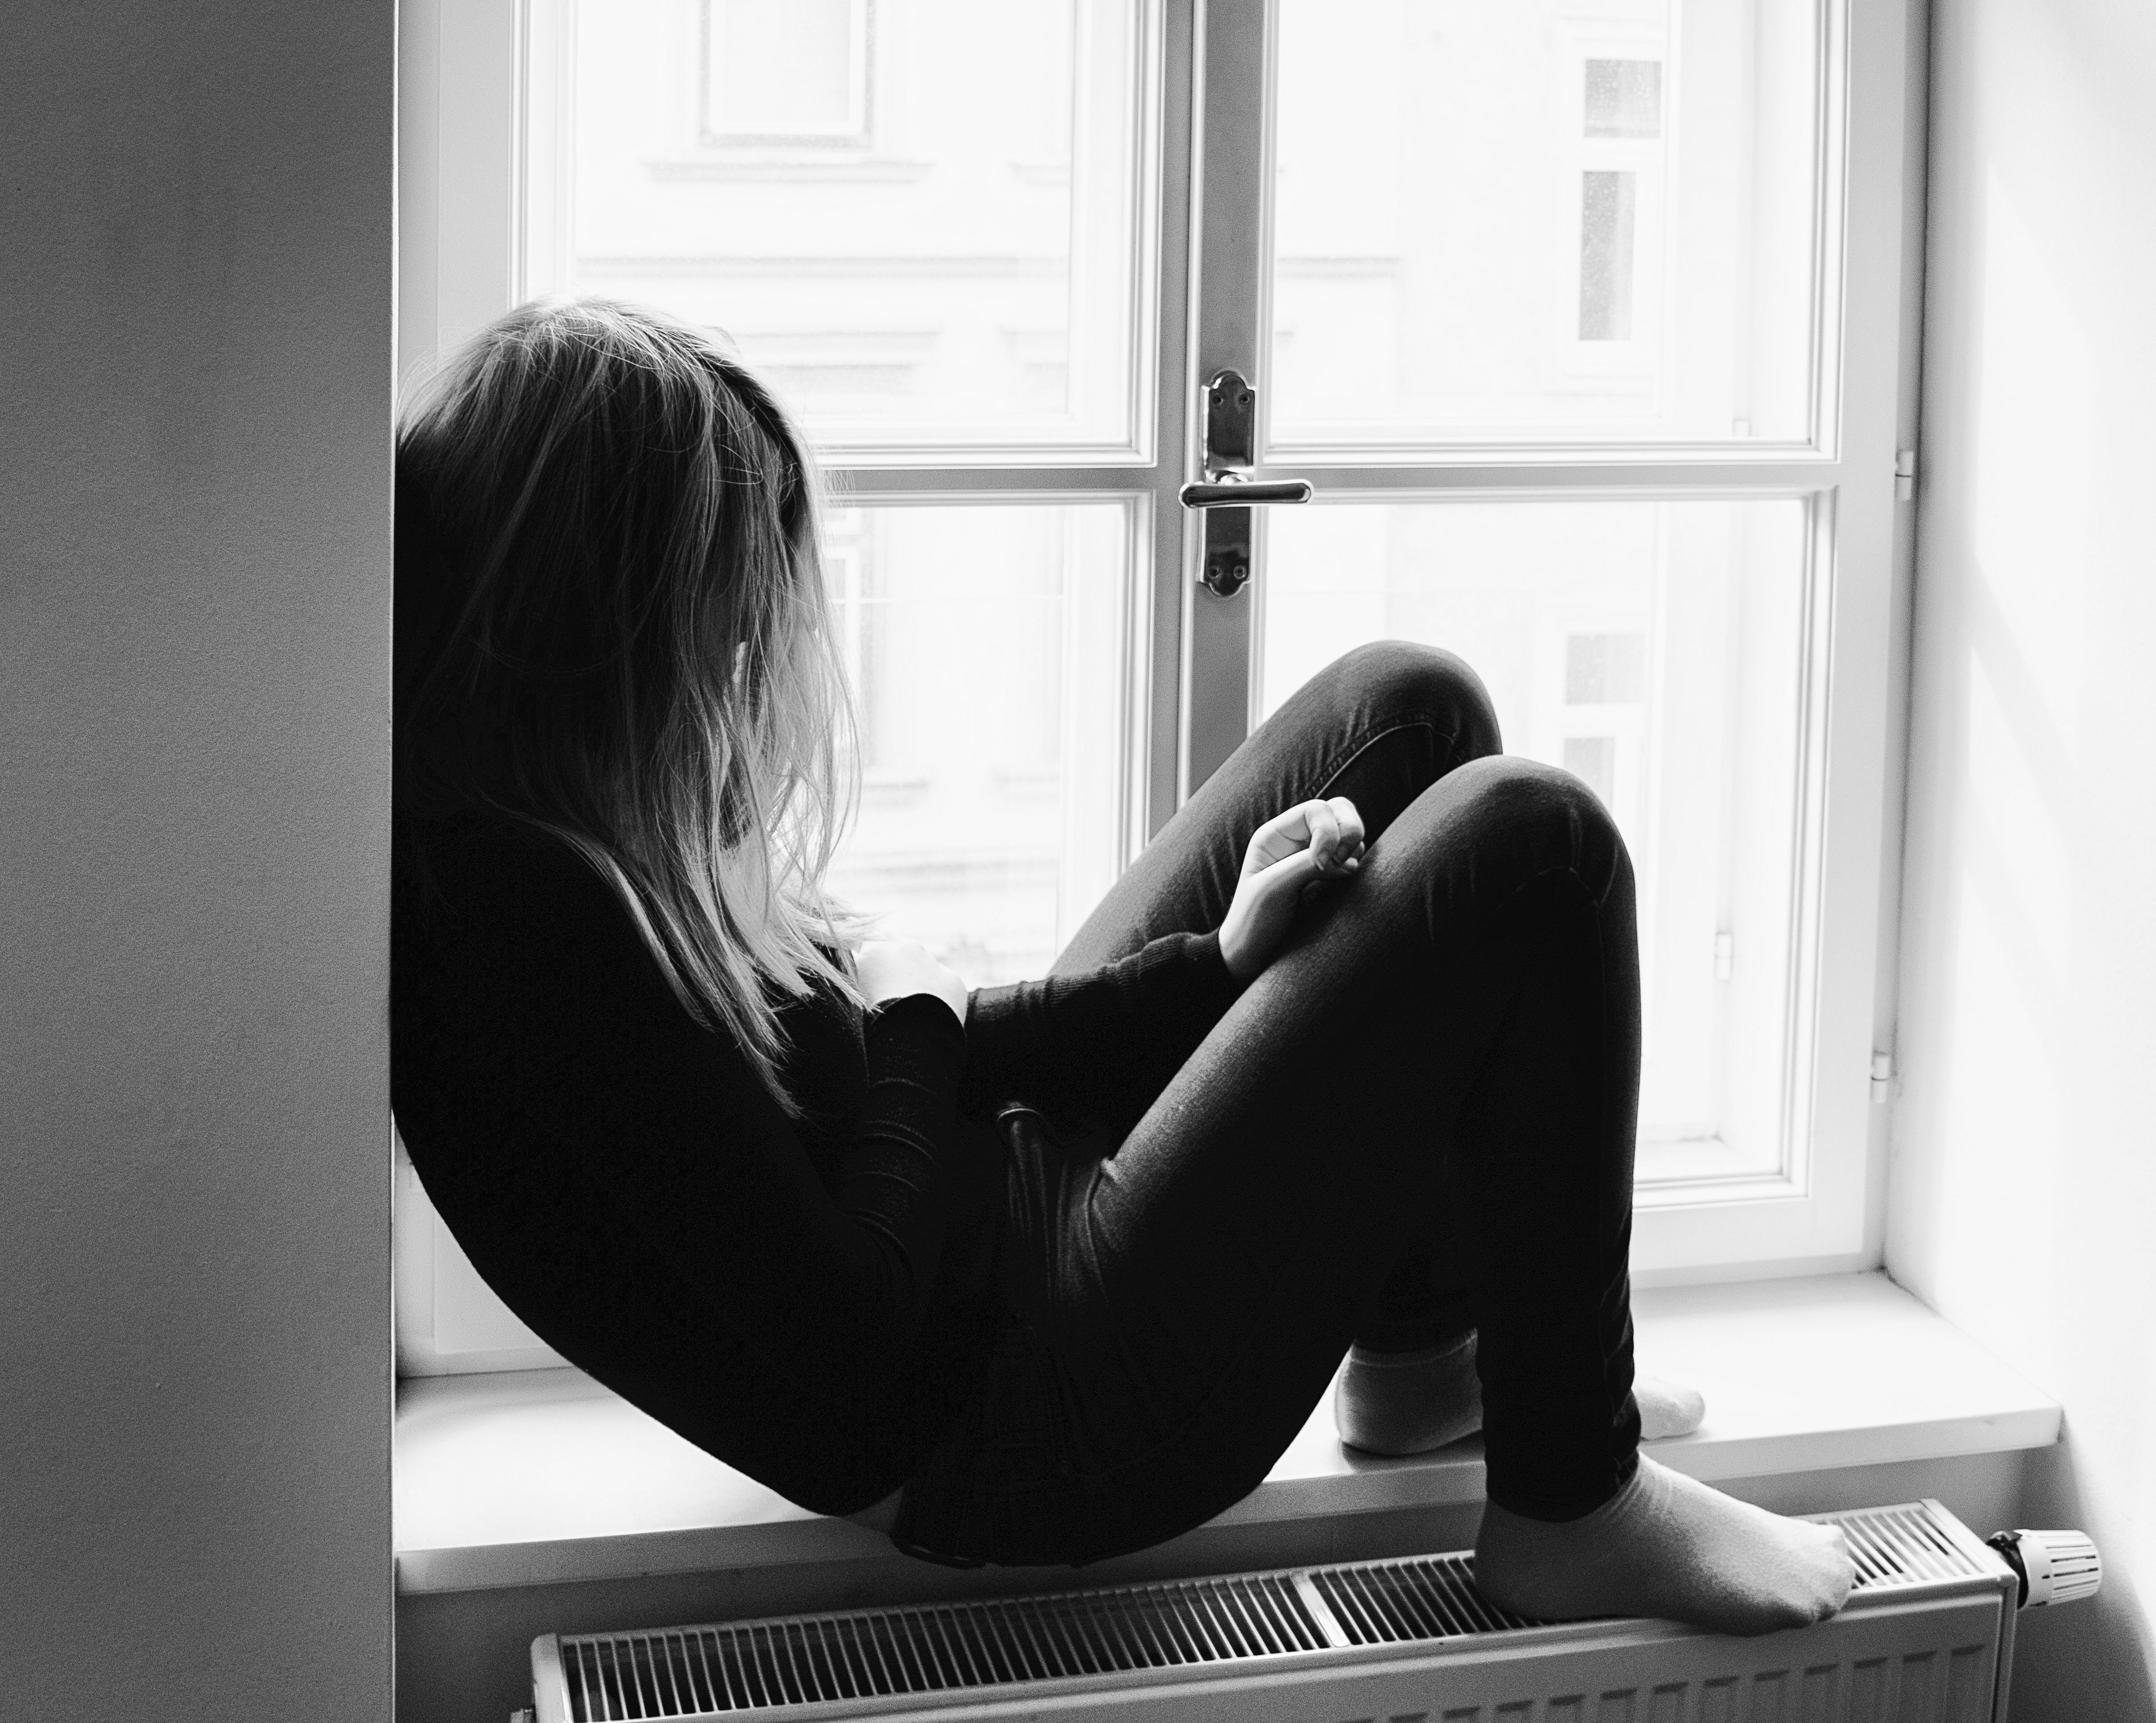 person-black-and-white-girl-white-photography-alone-1274362-pxhere.com (1)